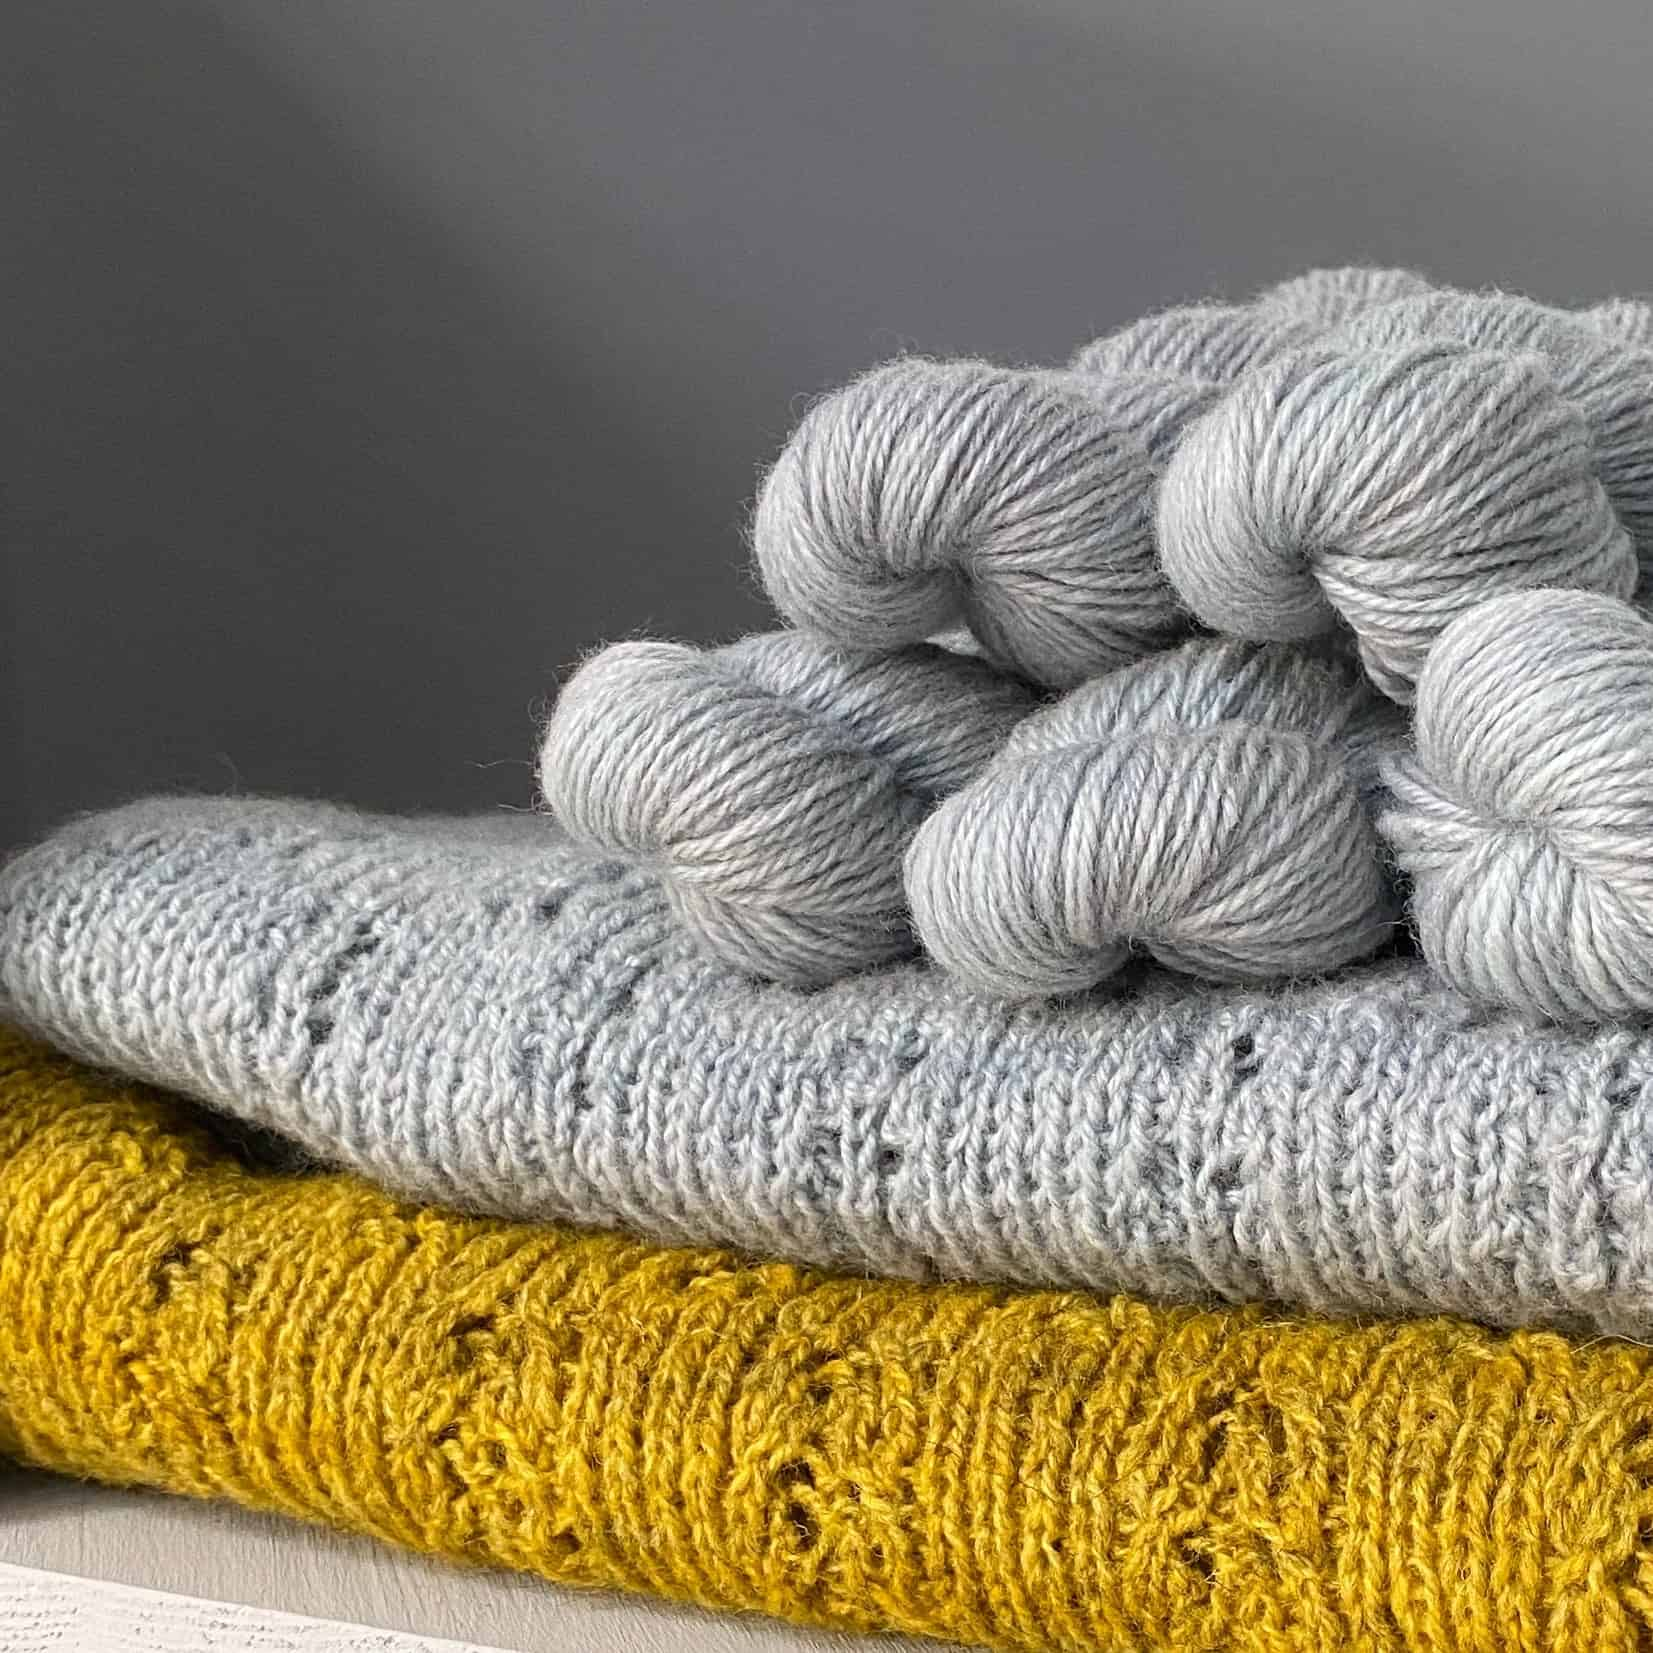 Gray yarn piled on gray and gold handknits.